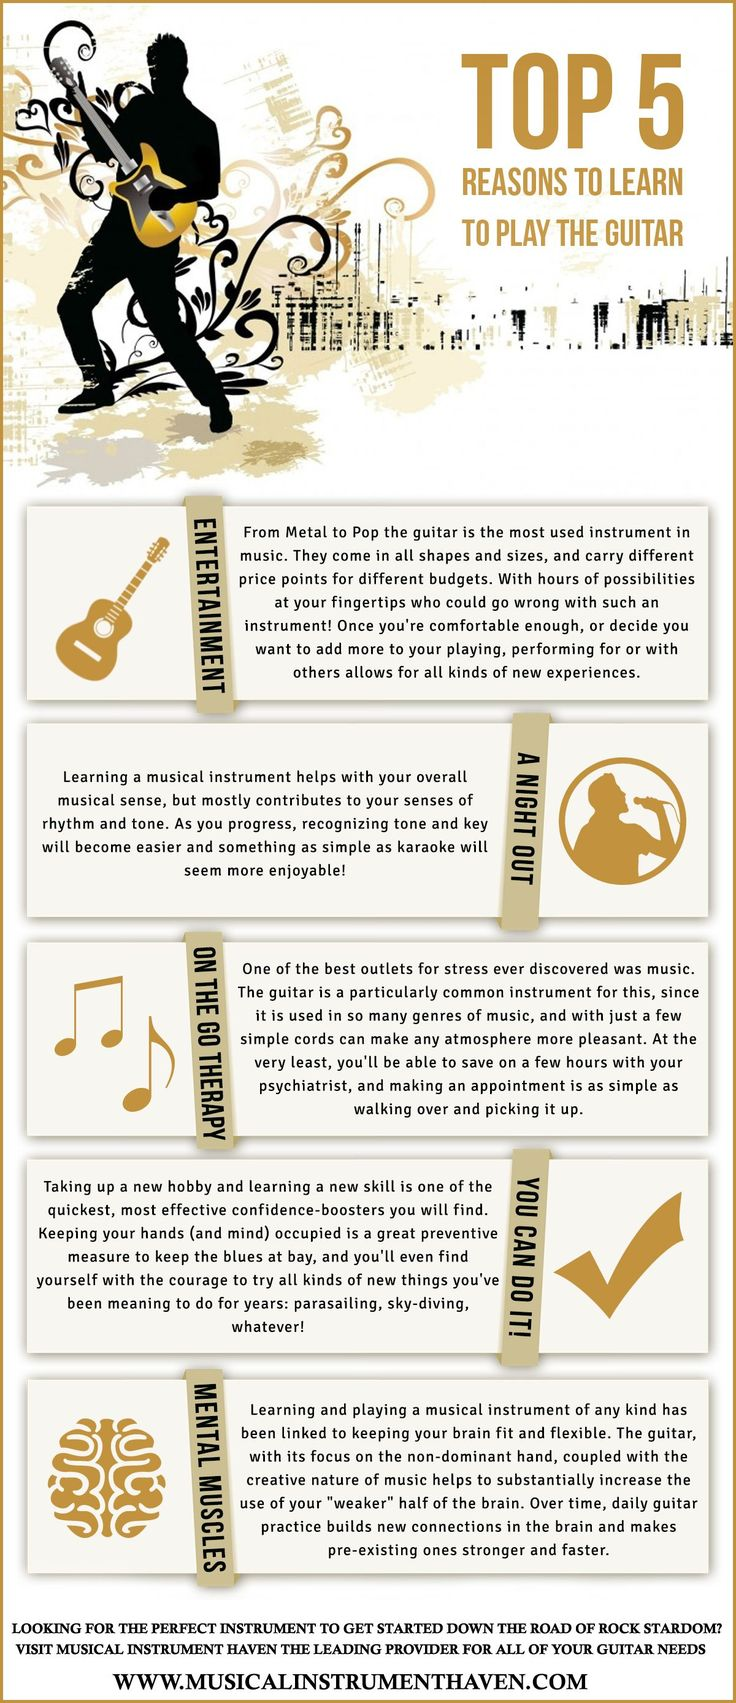 Top 5 Reasons To Learn To Play The Guitar. Looking to get started down the